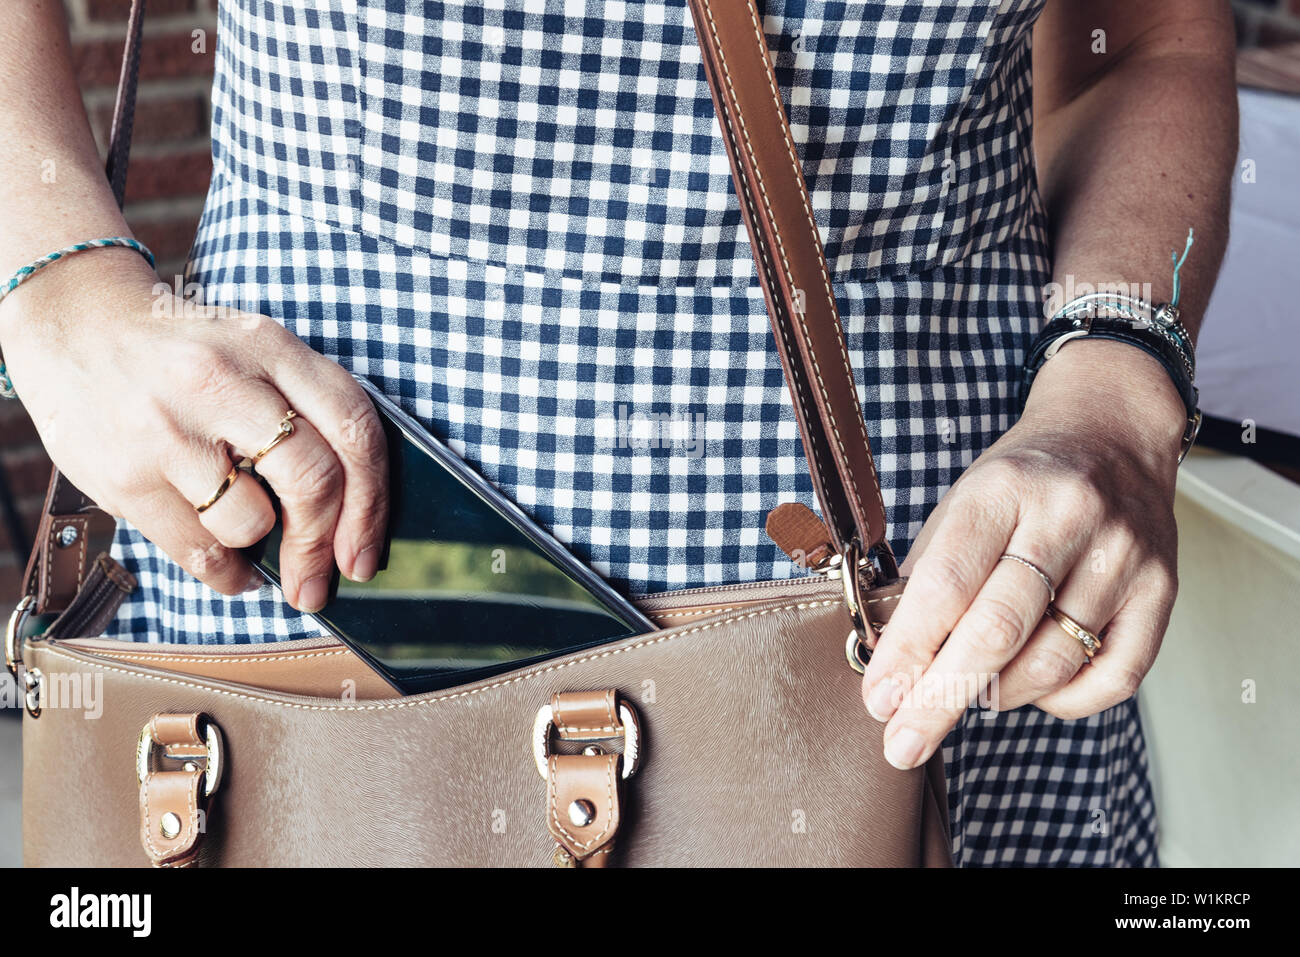 Close up of woman taking out smartphone from bag.  Business, technology, communication, leisure and people concept Stock Photo